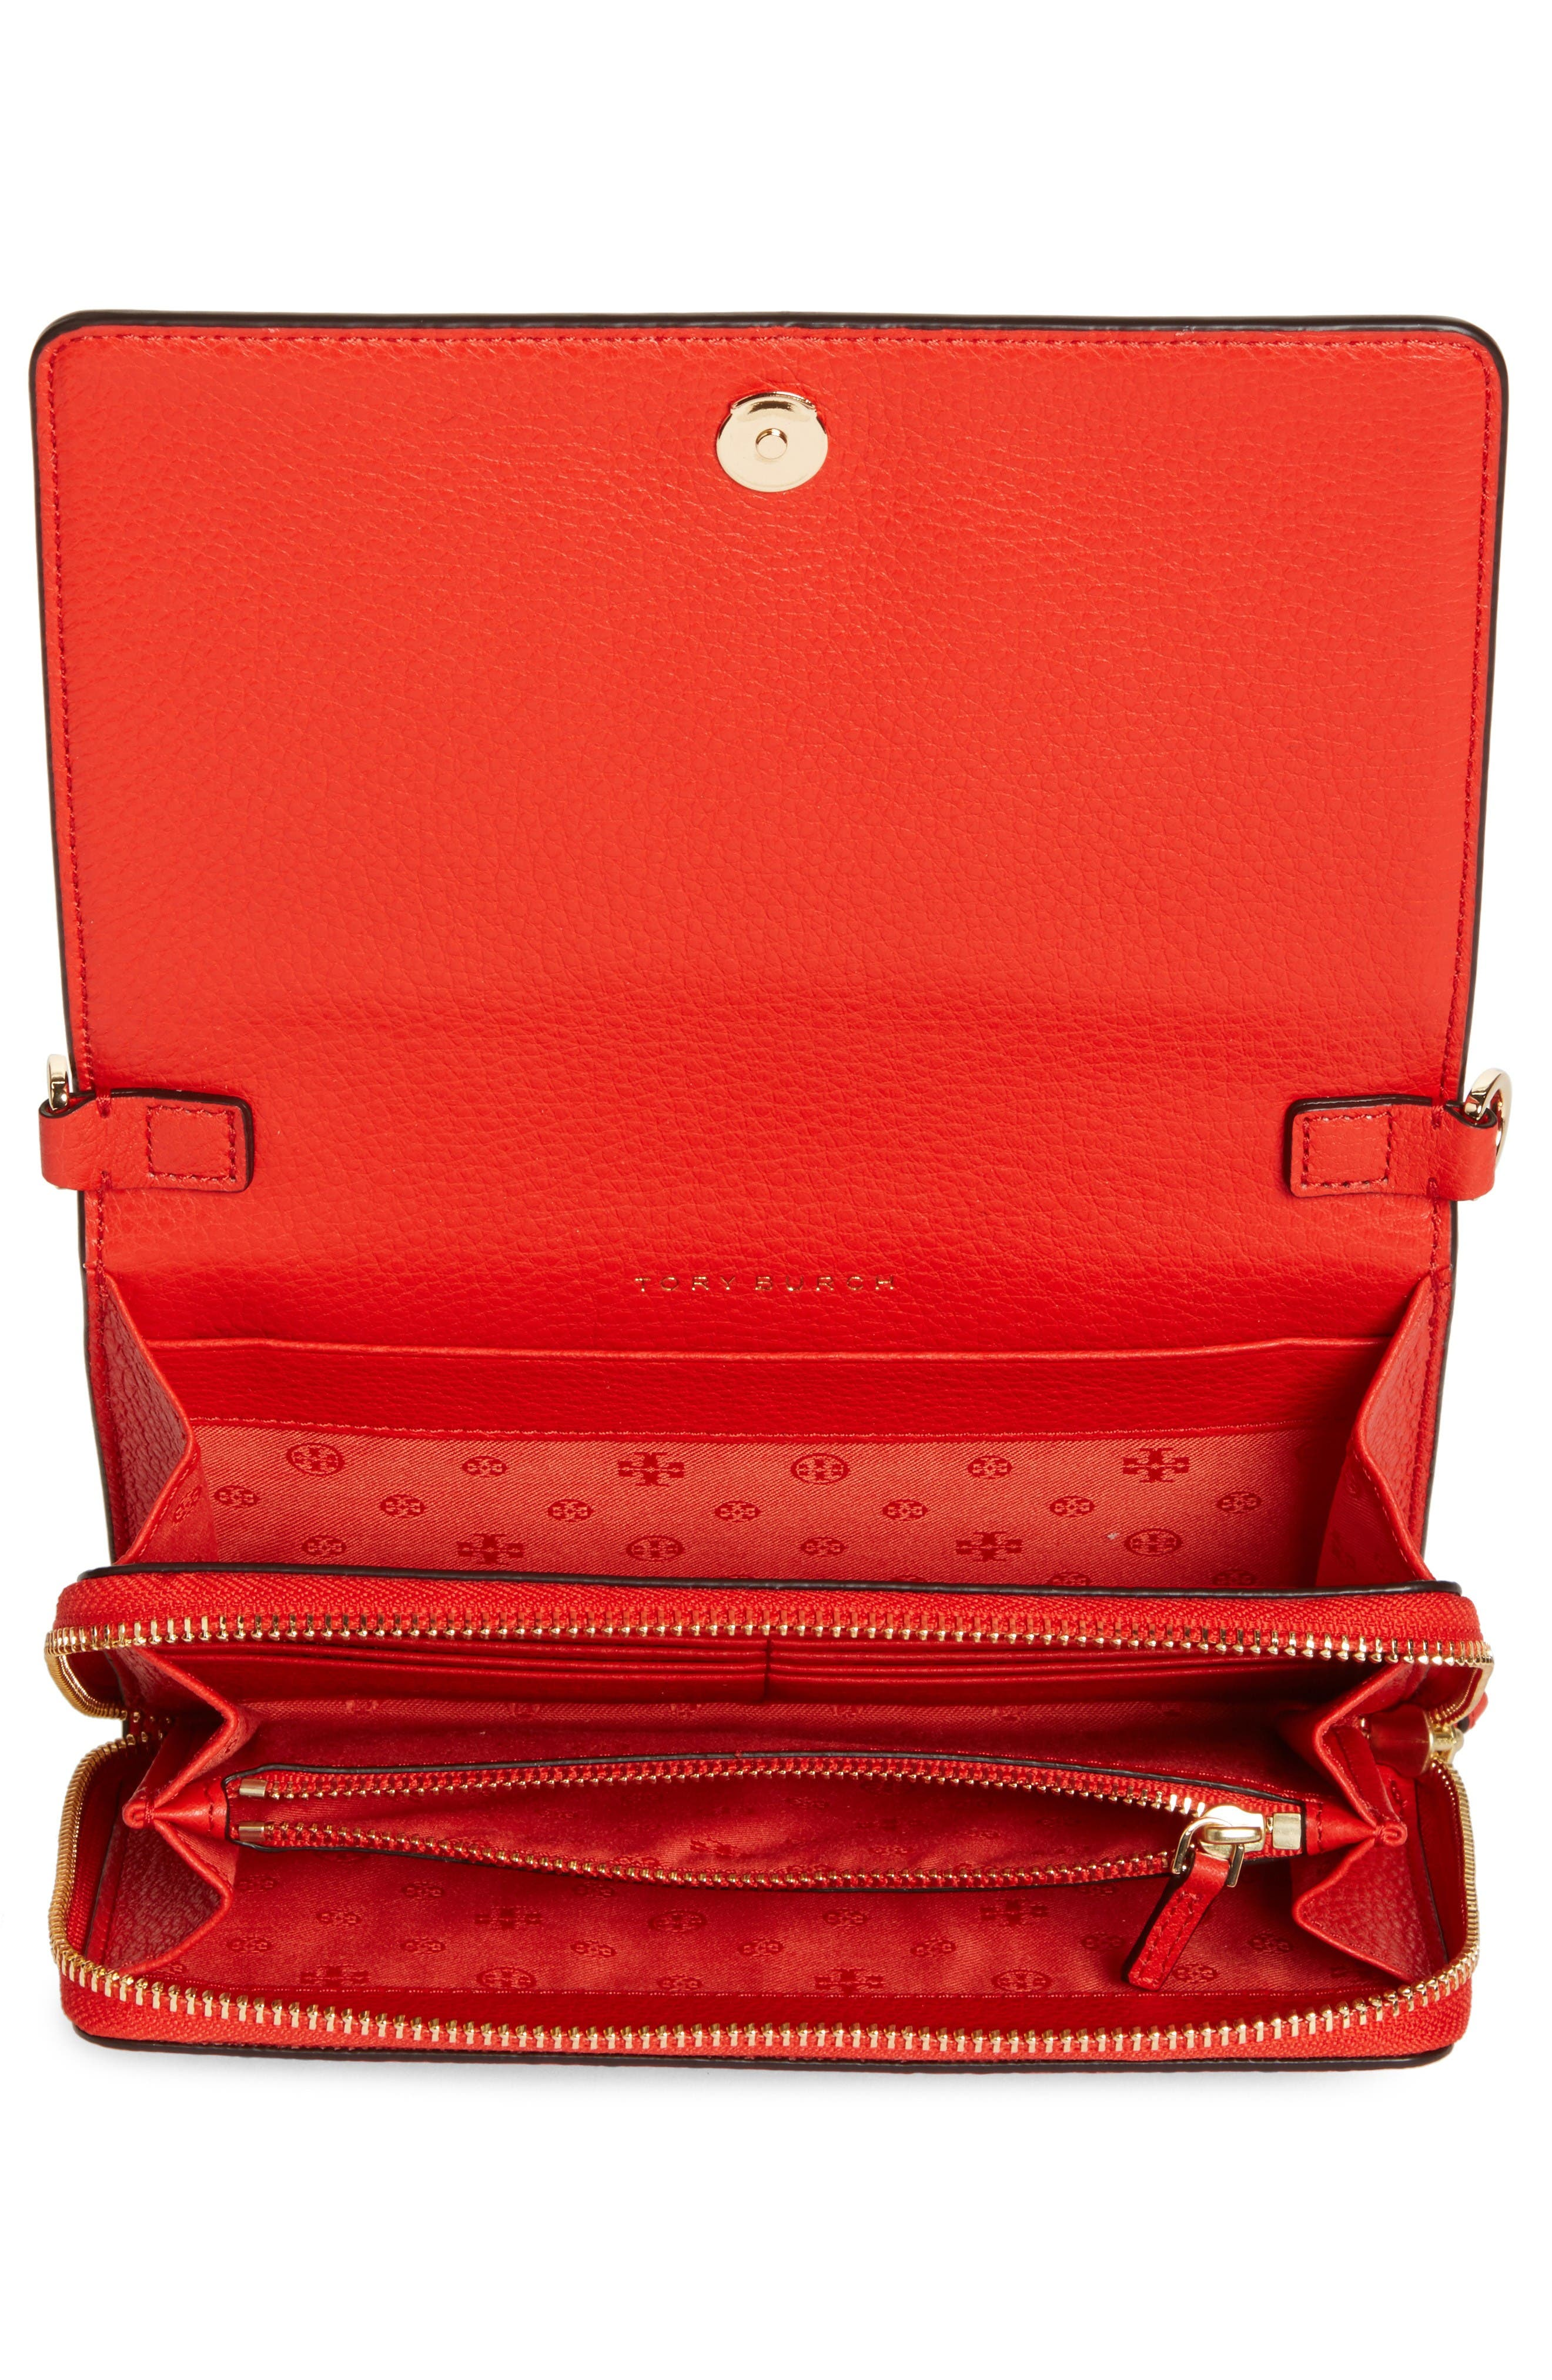 Alternate Image 3  - Tory Burch 'Harper' Pebbled Leather Wallet Crossbody Bag